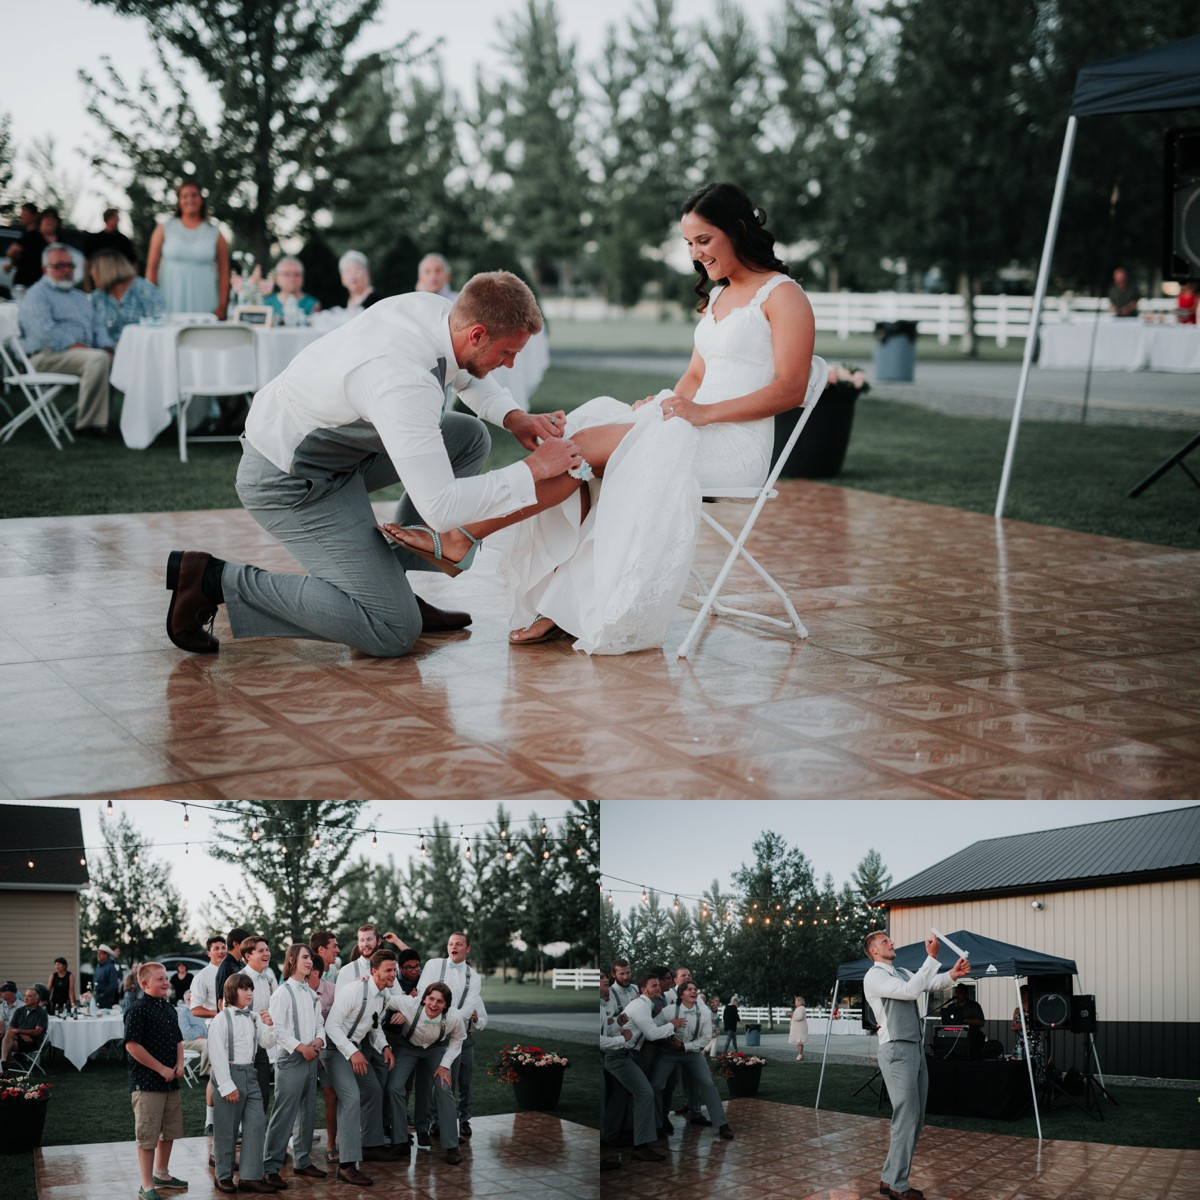 spokane wedding photographer_0820